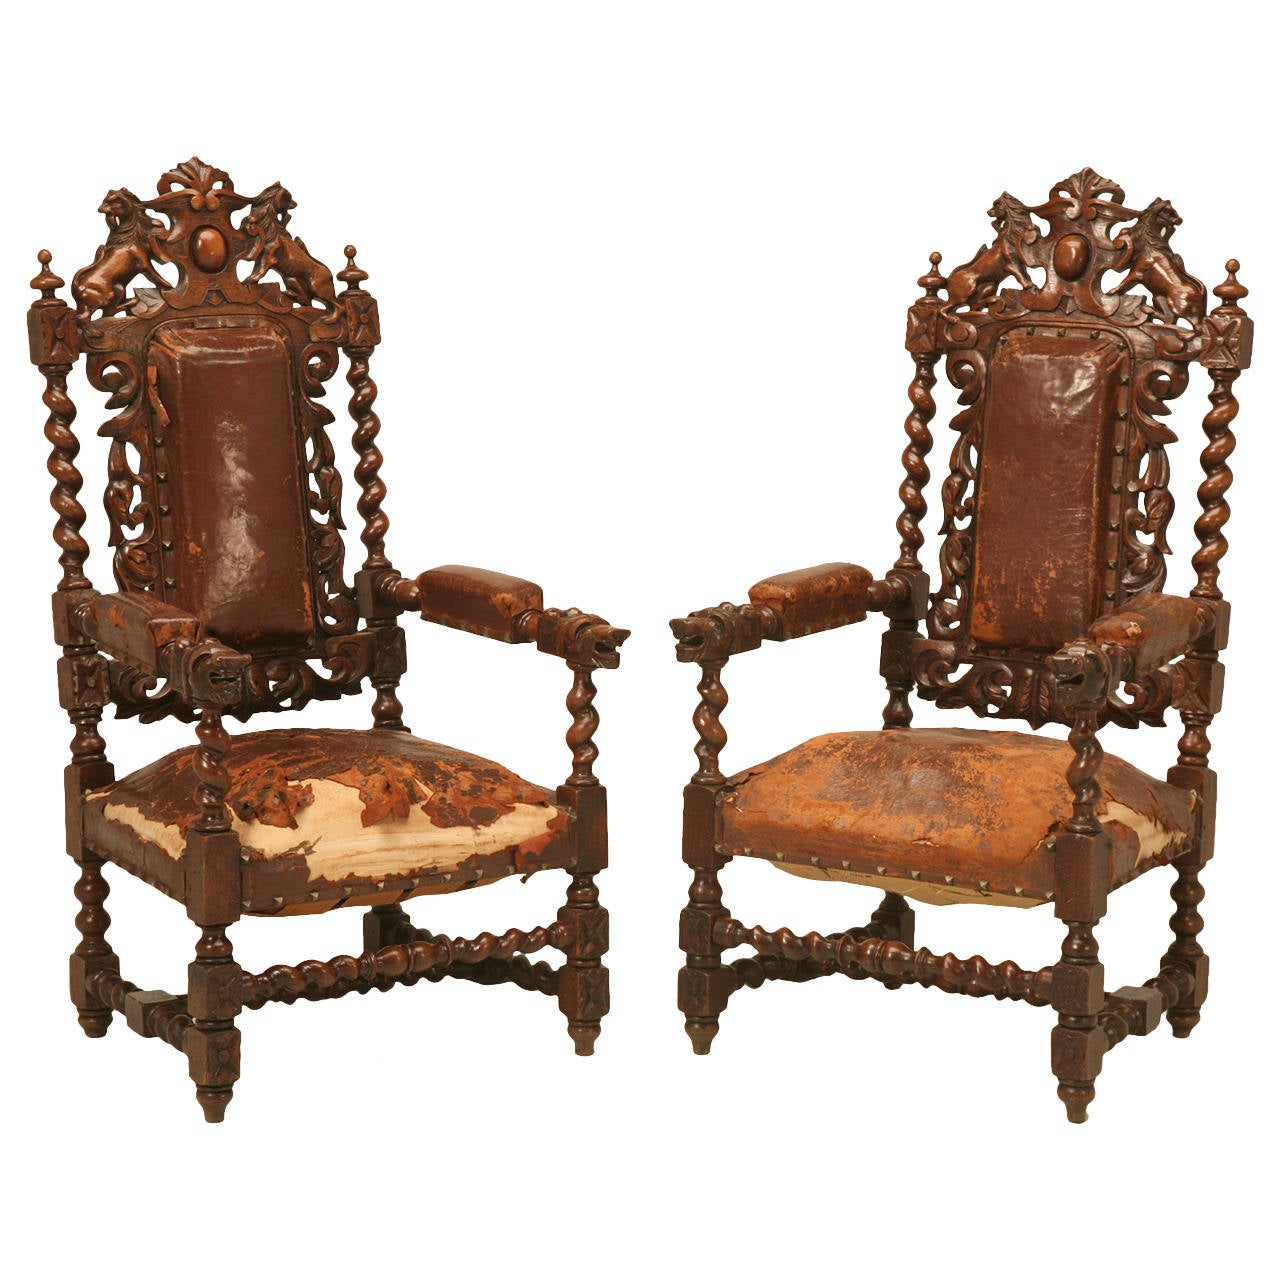 barley twist chair adirondack chairs target pair of french over the top throne at